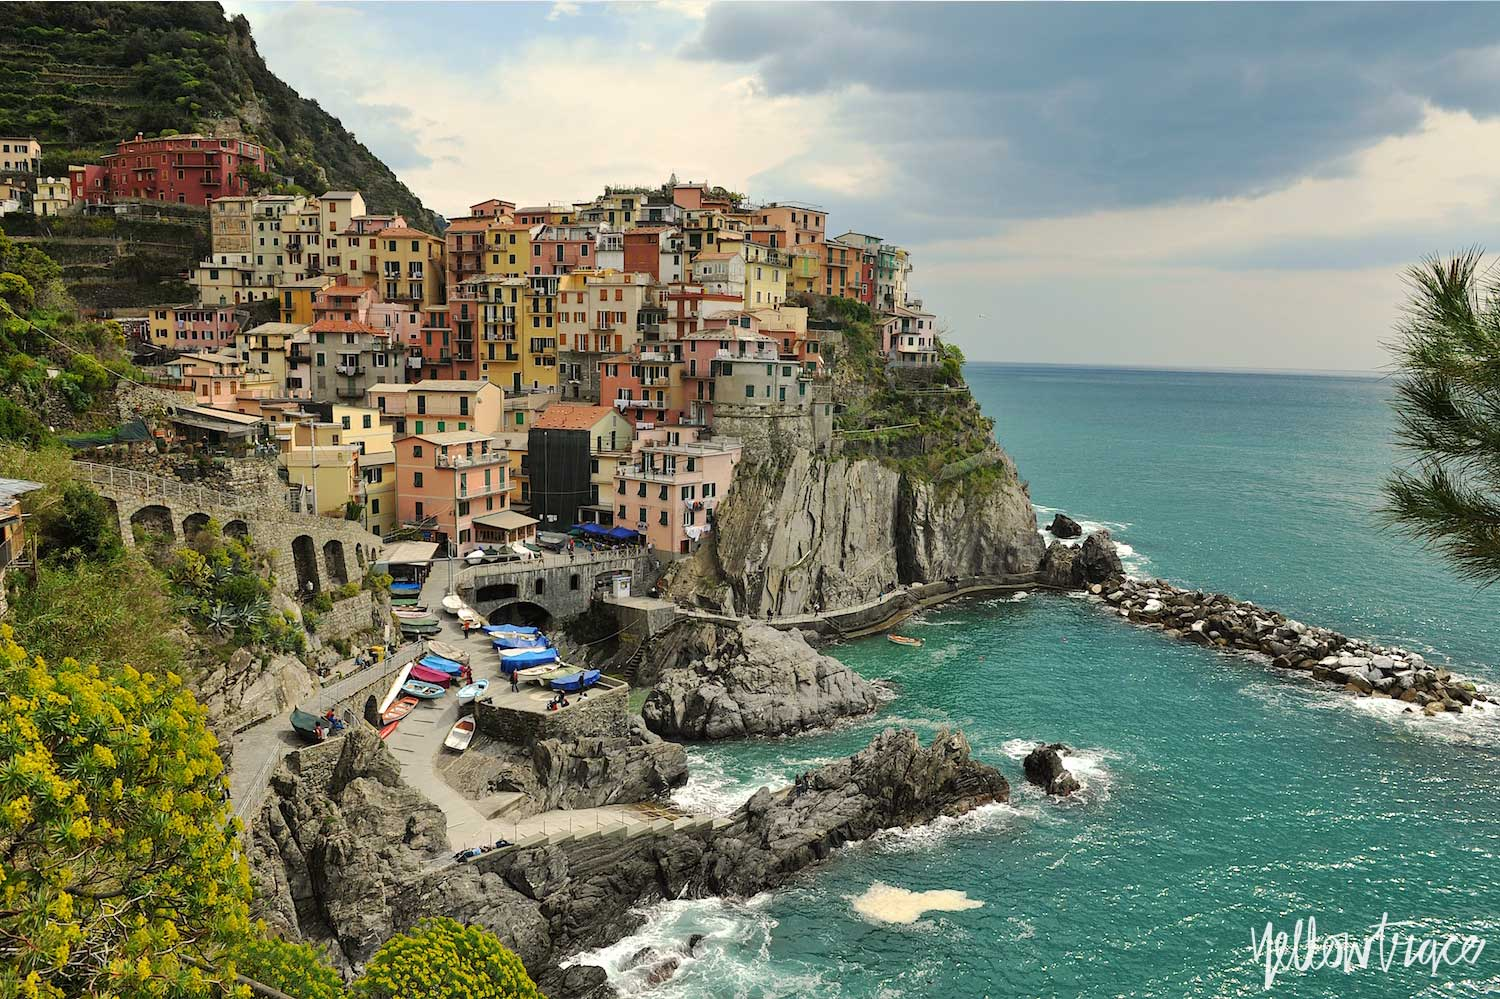 #YellowtraceTravels to Manarola, Cinque Terre Italy / Photo © Nick Hughes